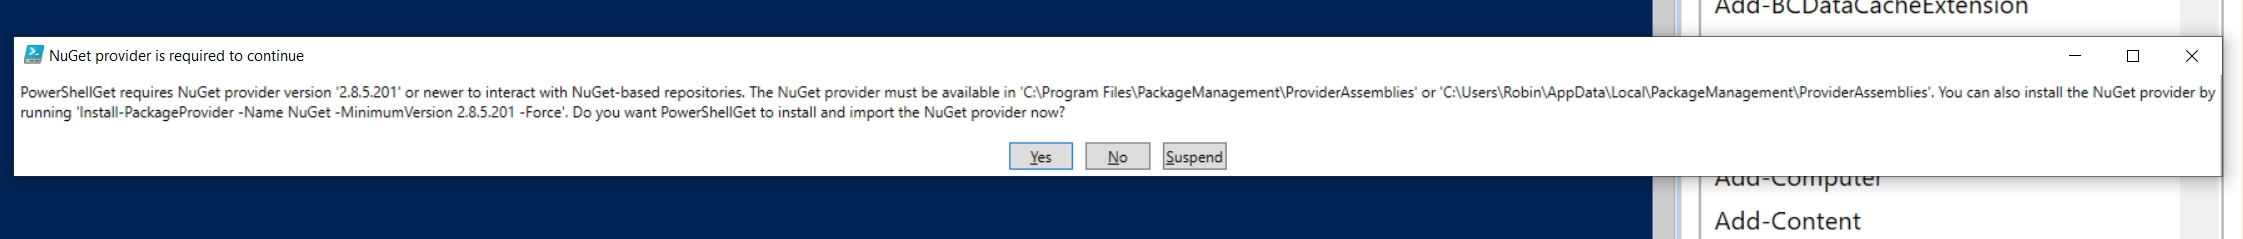 How to deploy Windows Virtual Desktop (Preview) and publish a Full